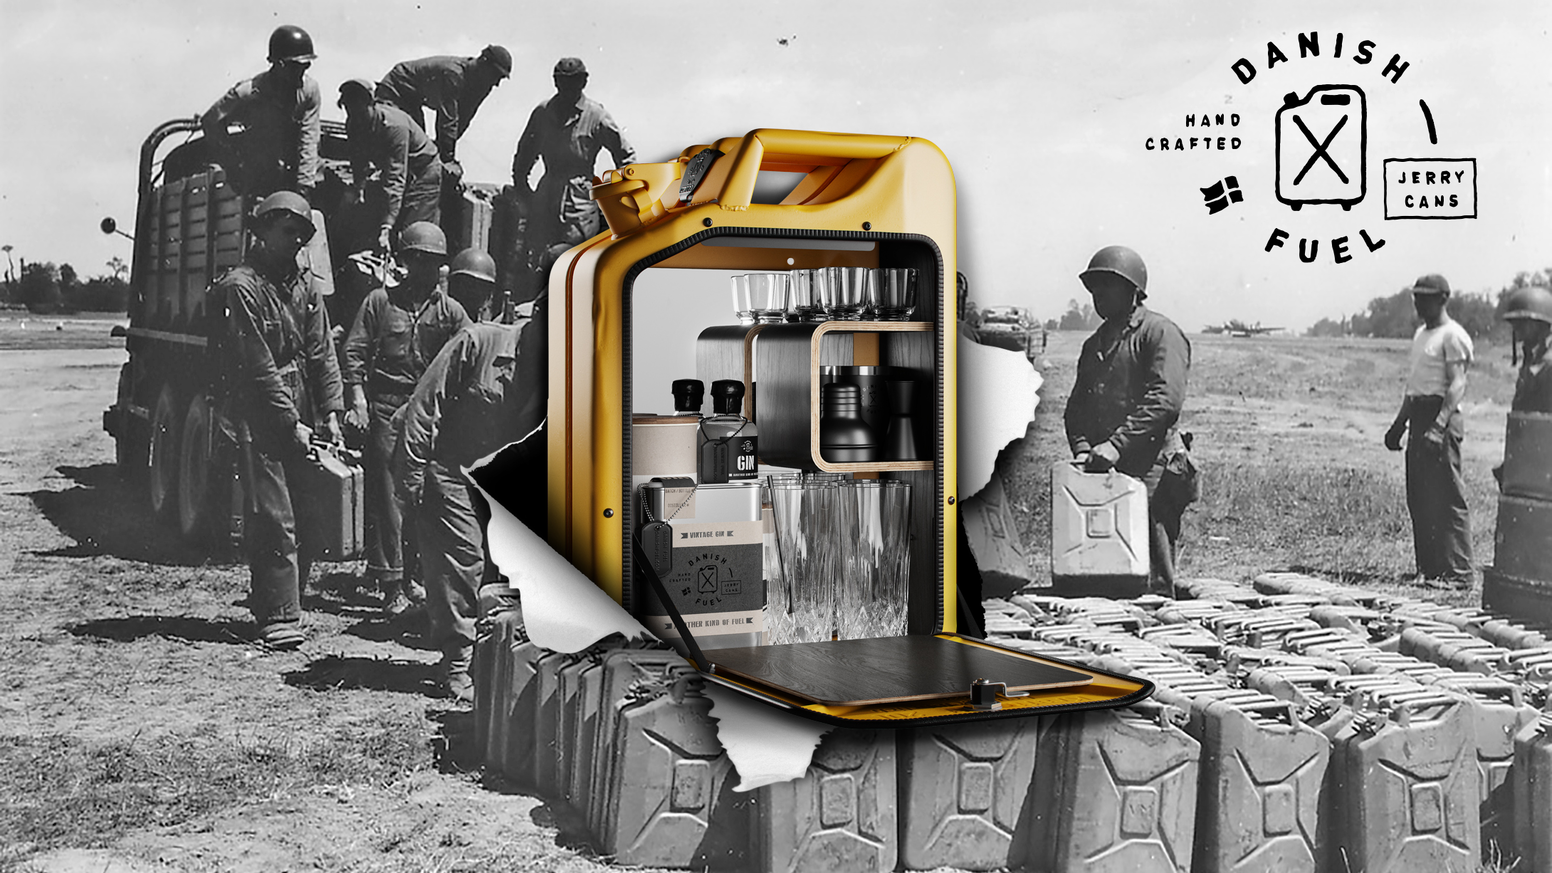 Re-designs of original German World War II fuel can icons. Danish Fuel - Proudly Made in Denmark since 2010, by originals